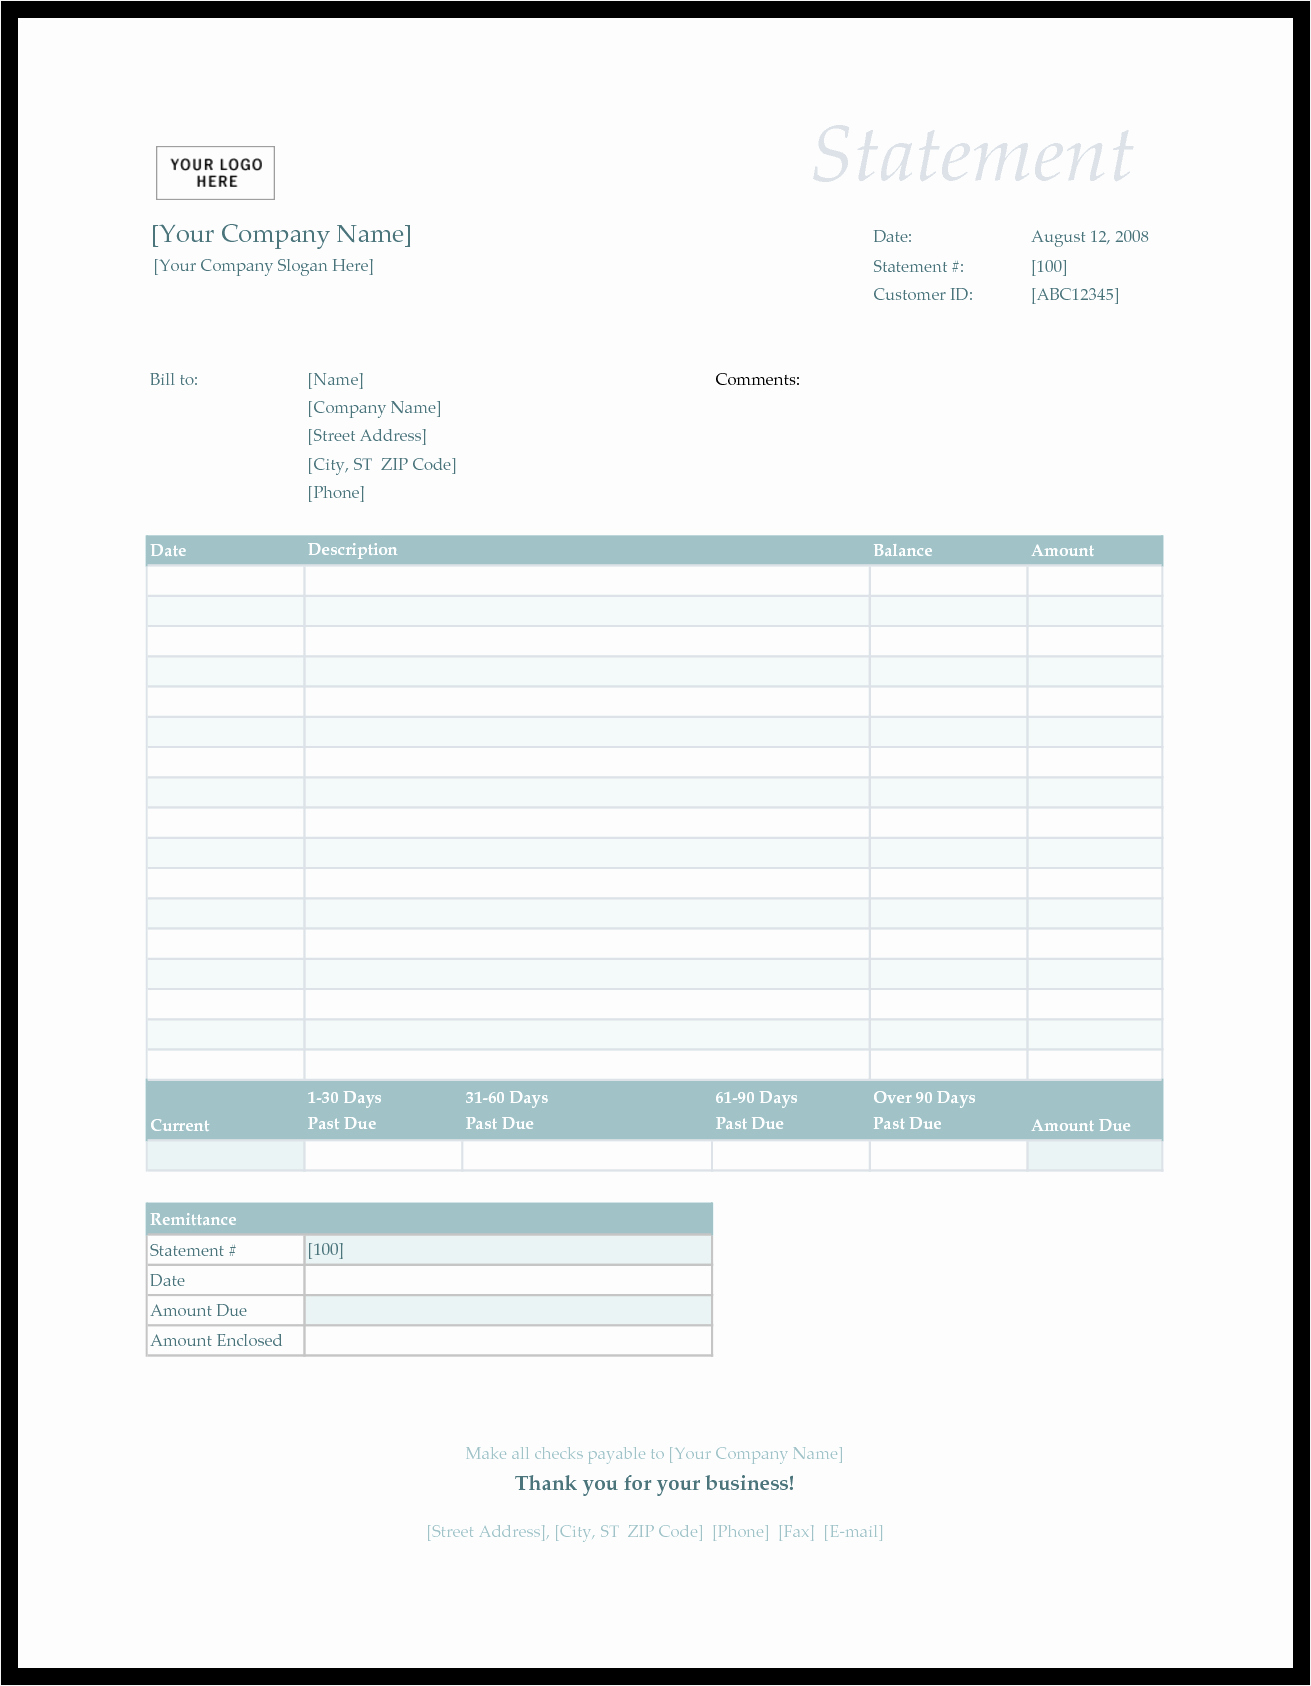 Billing Invoice Template Free Inspirational Bill Statement Template Mughals